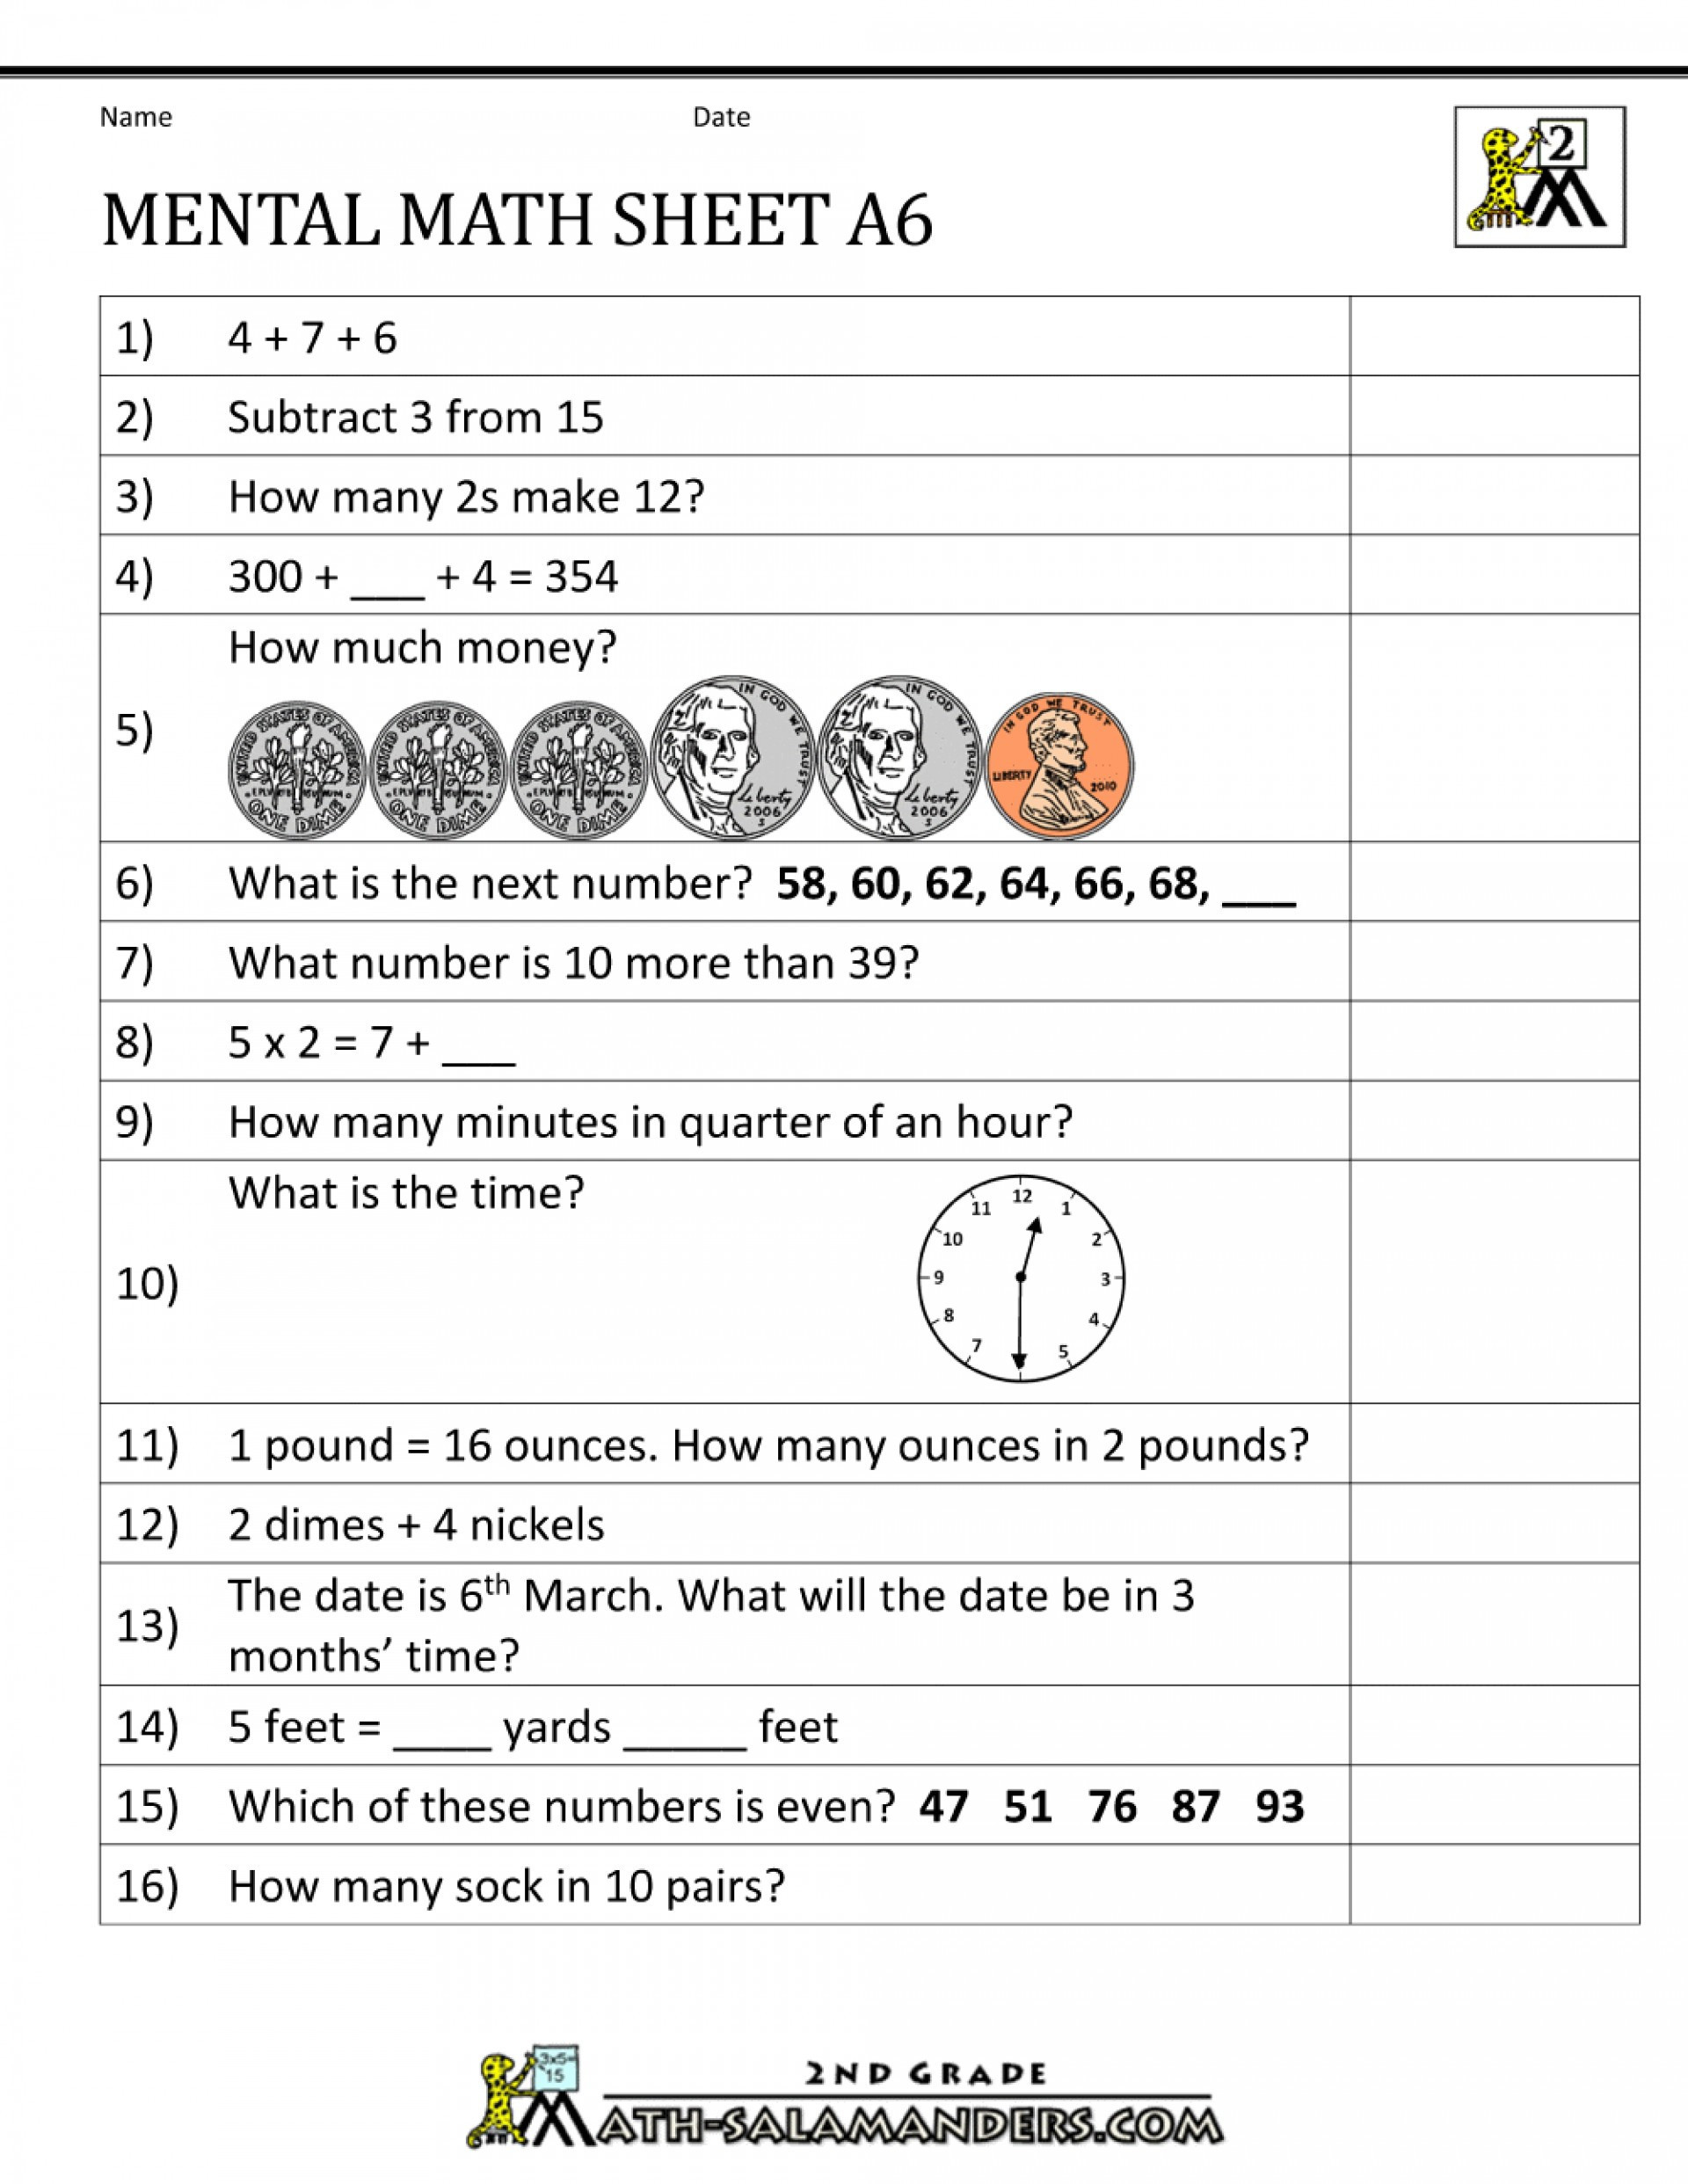 Mental Math Worksheets Grade 6 4 Mental Maths Worksheets 5th – Learning Worksheets